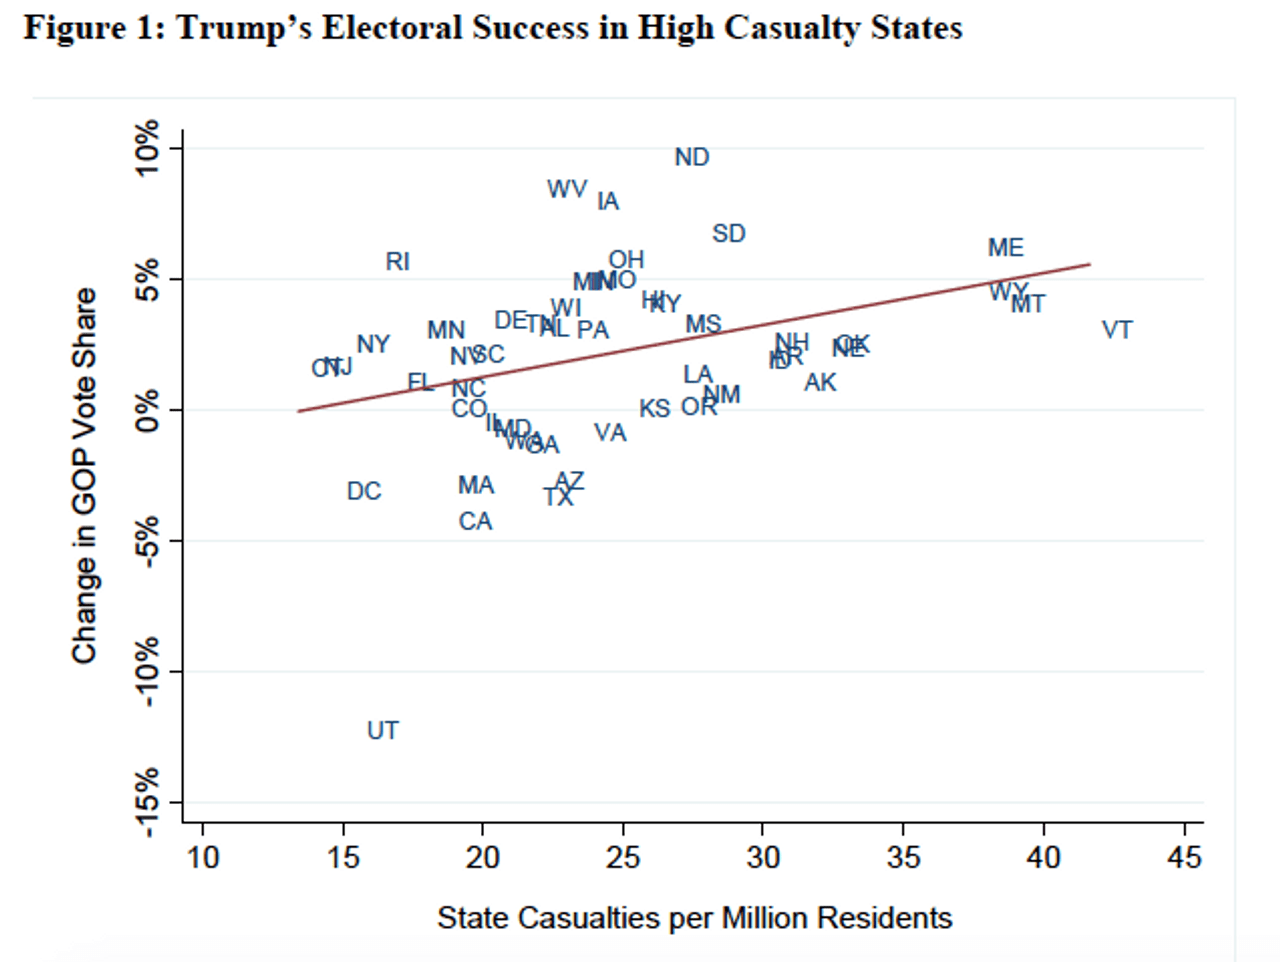 Trump's electoral success in high casualty states